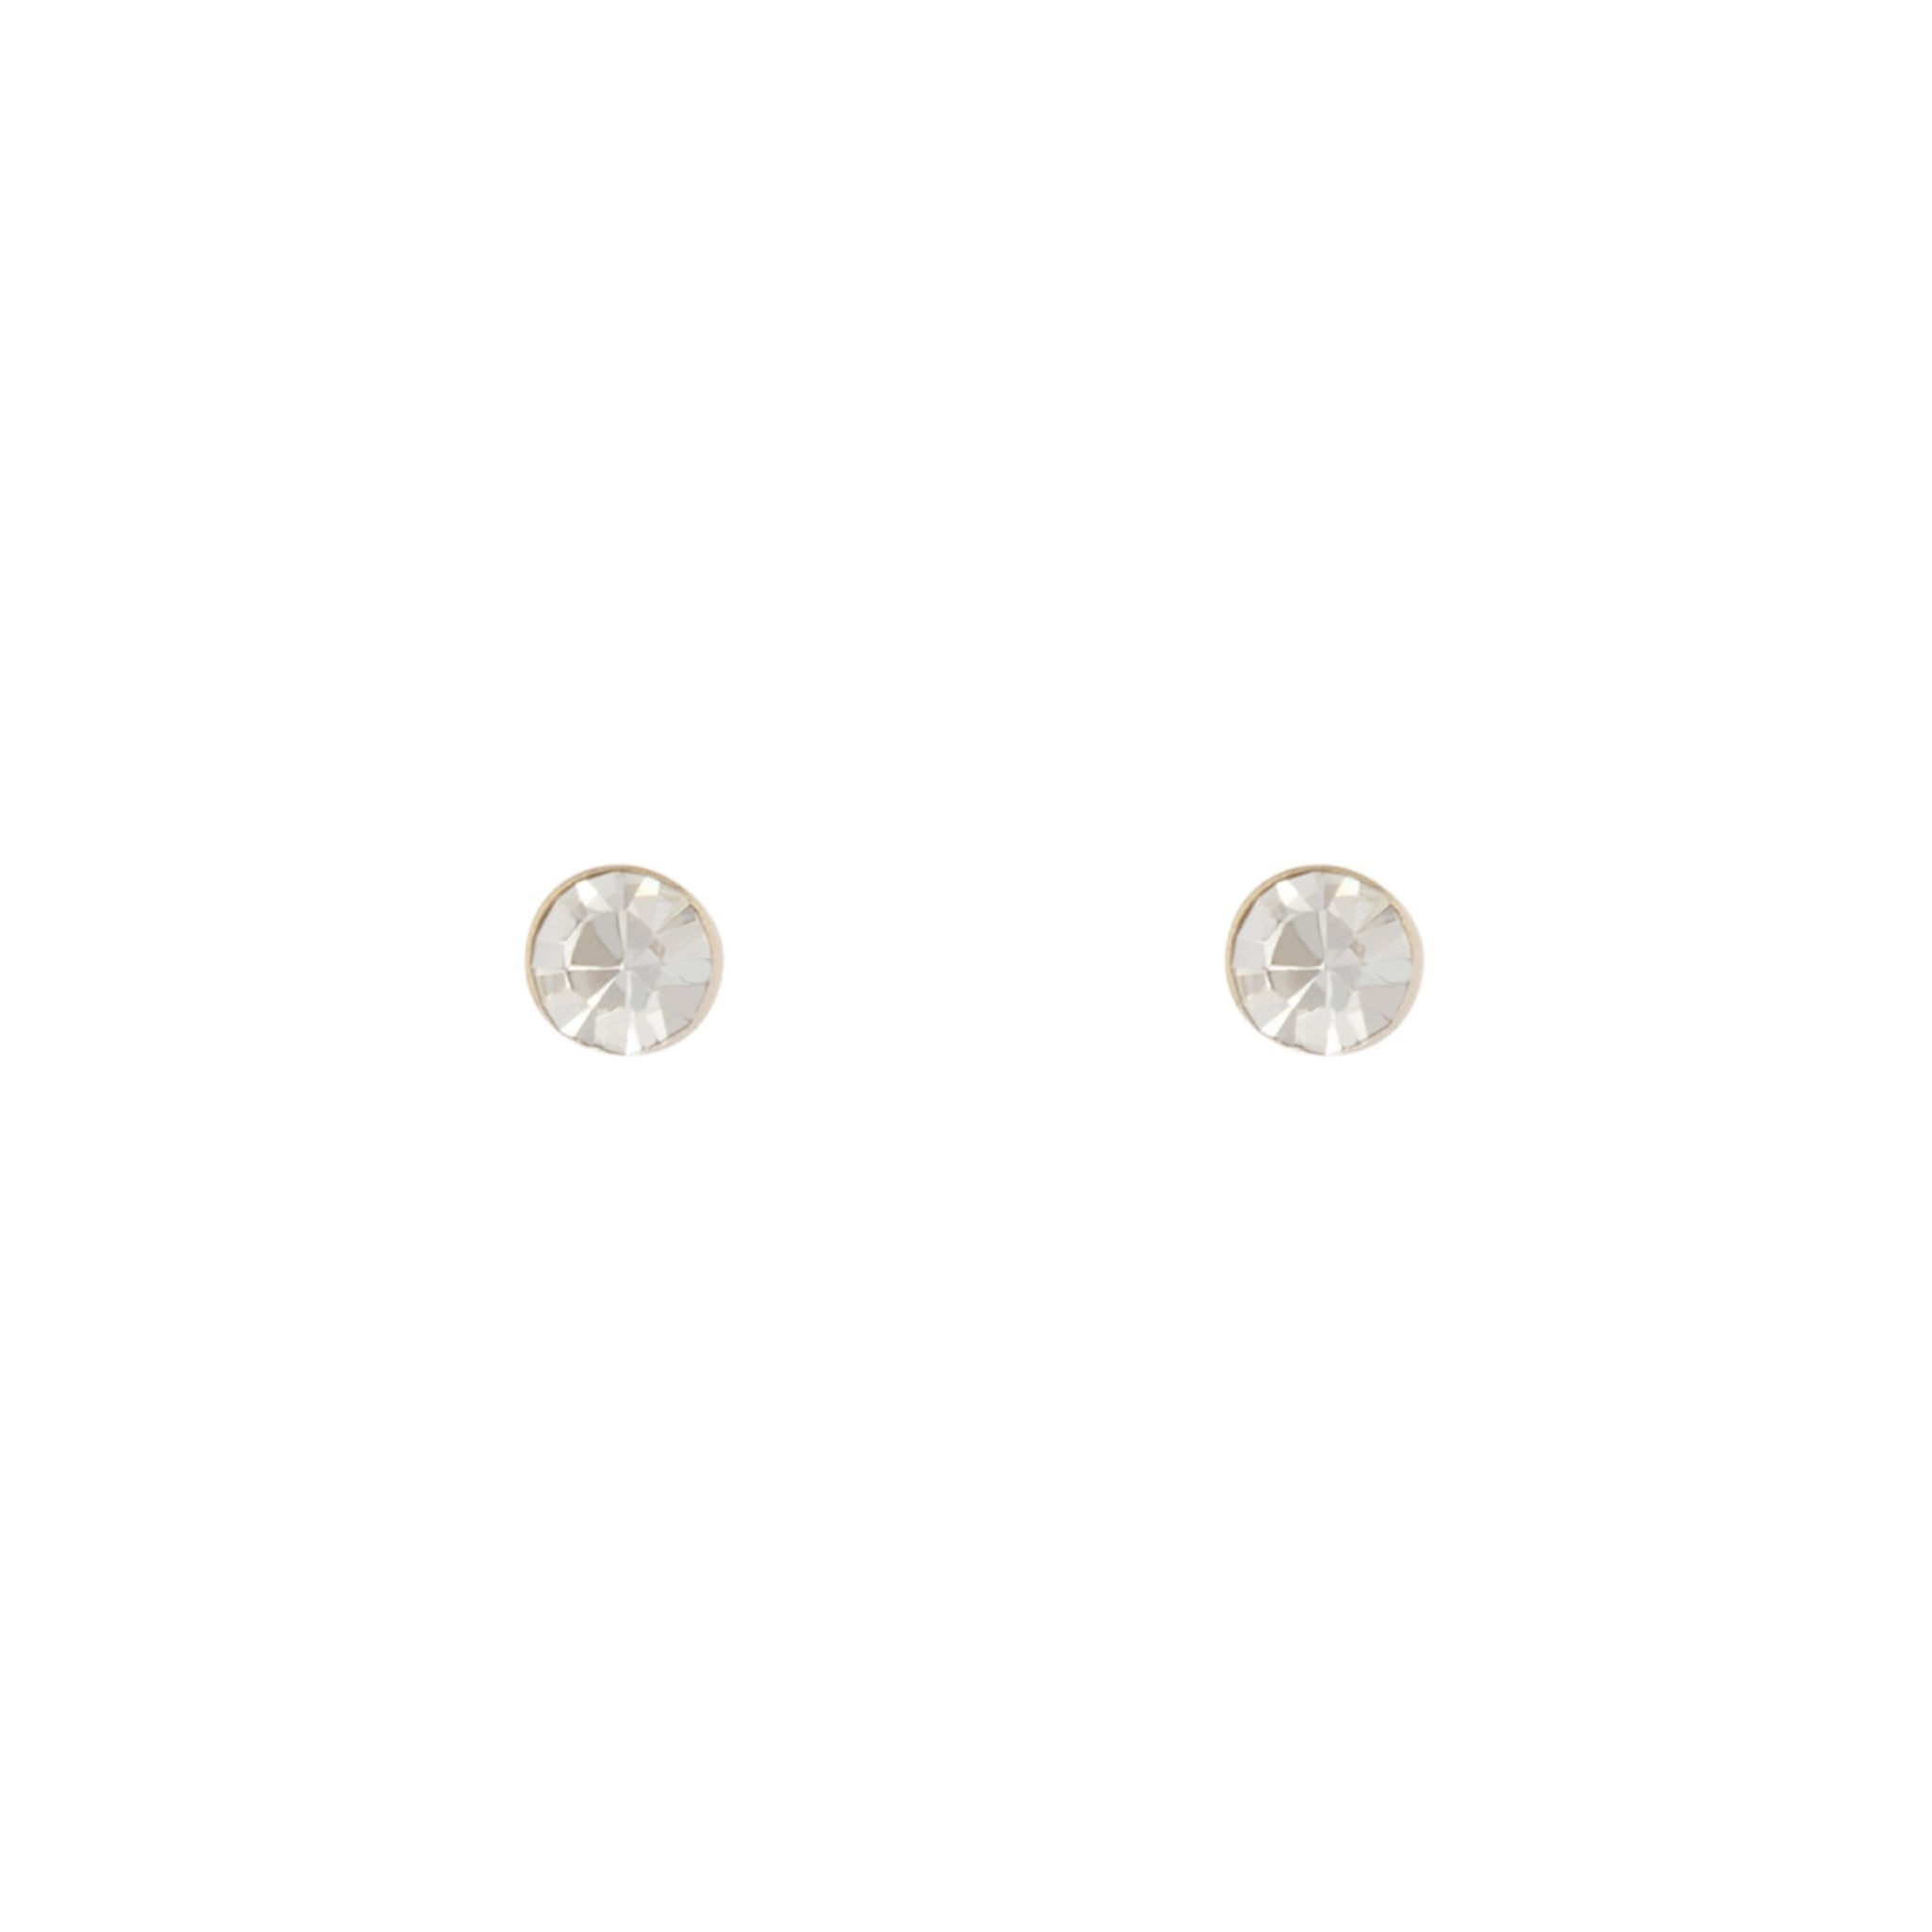 Small Diamante Stud Earrings